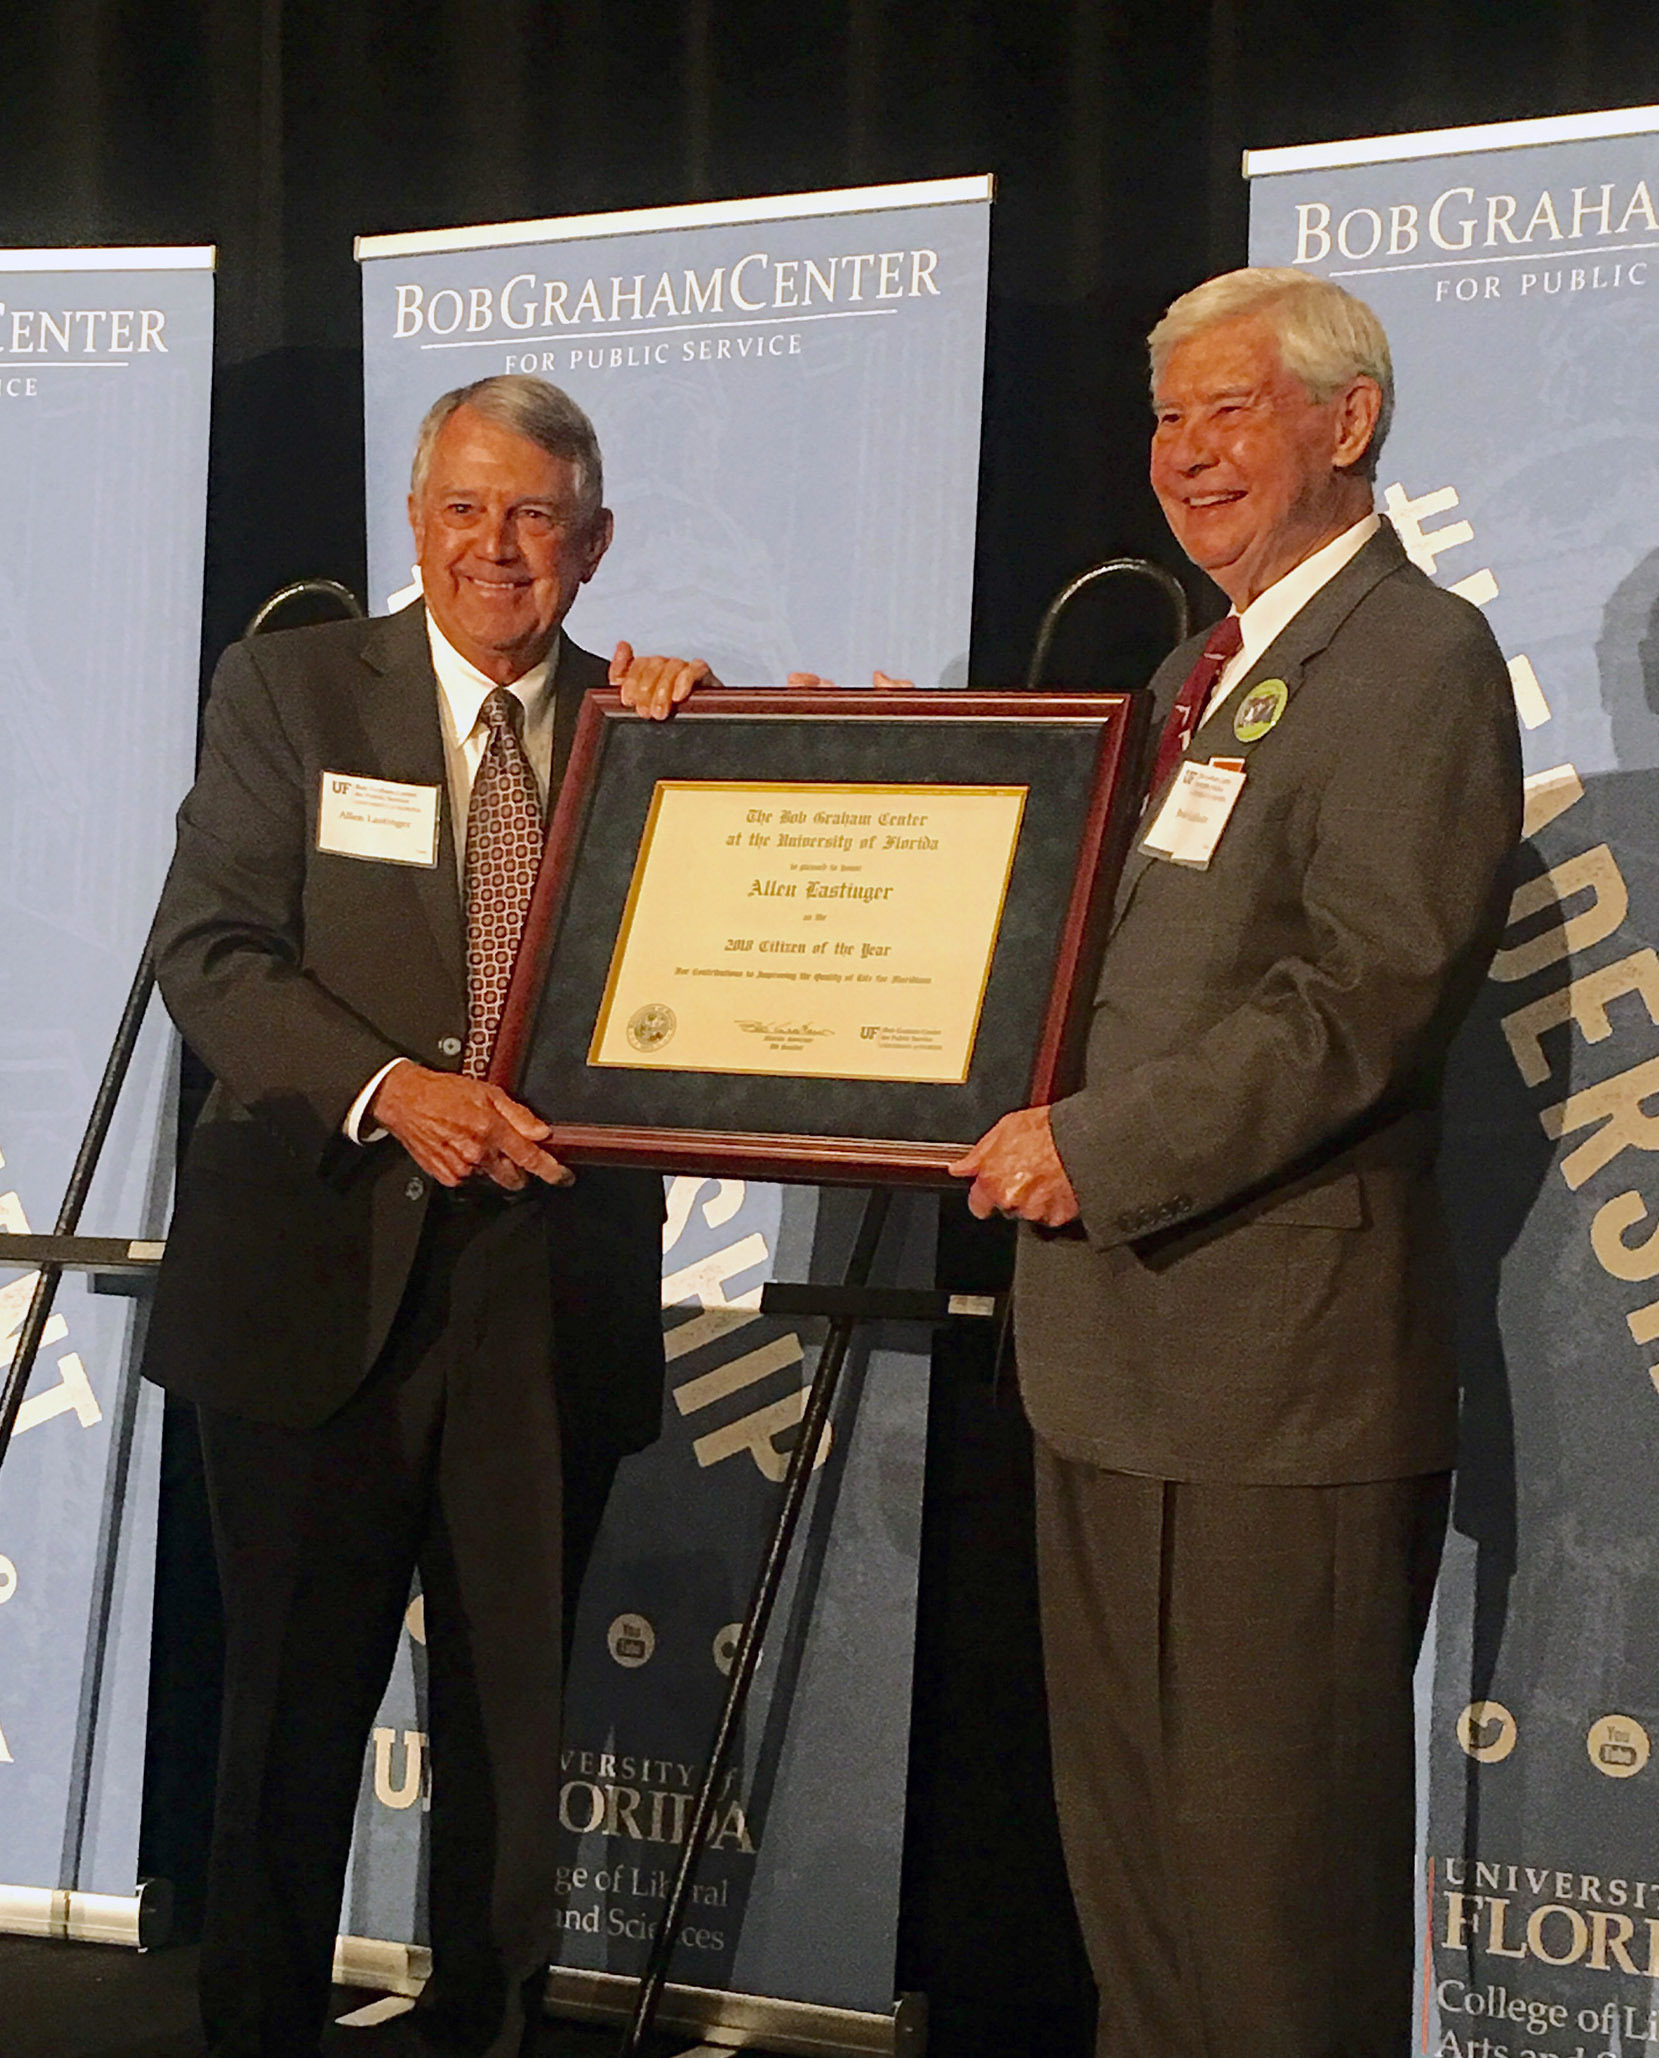 Bob Graham with Allen Lastinger receiving the Citizen of the Year award